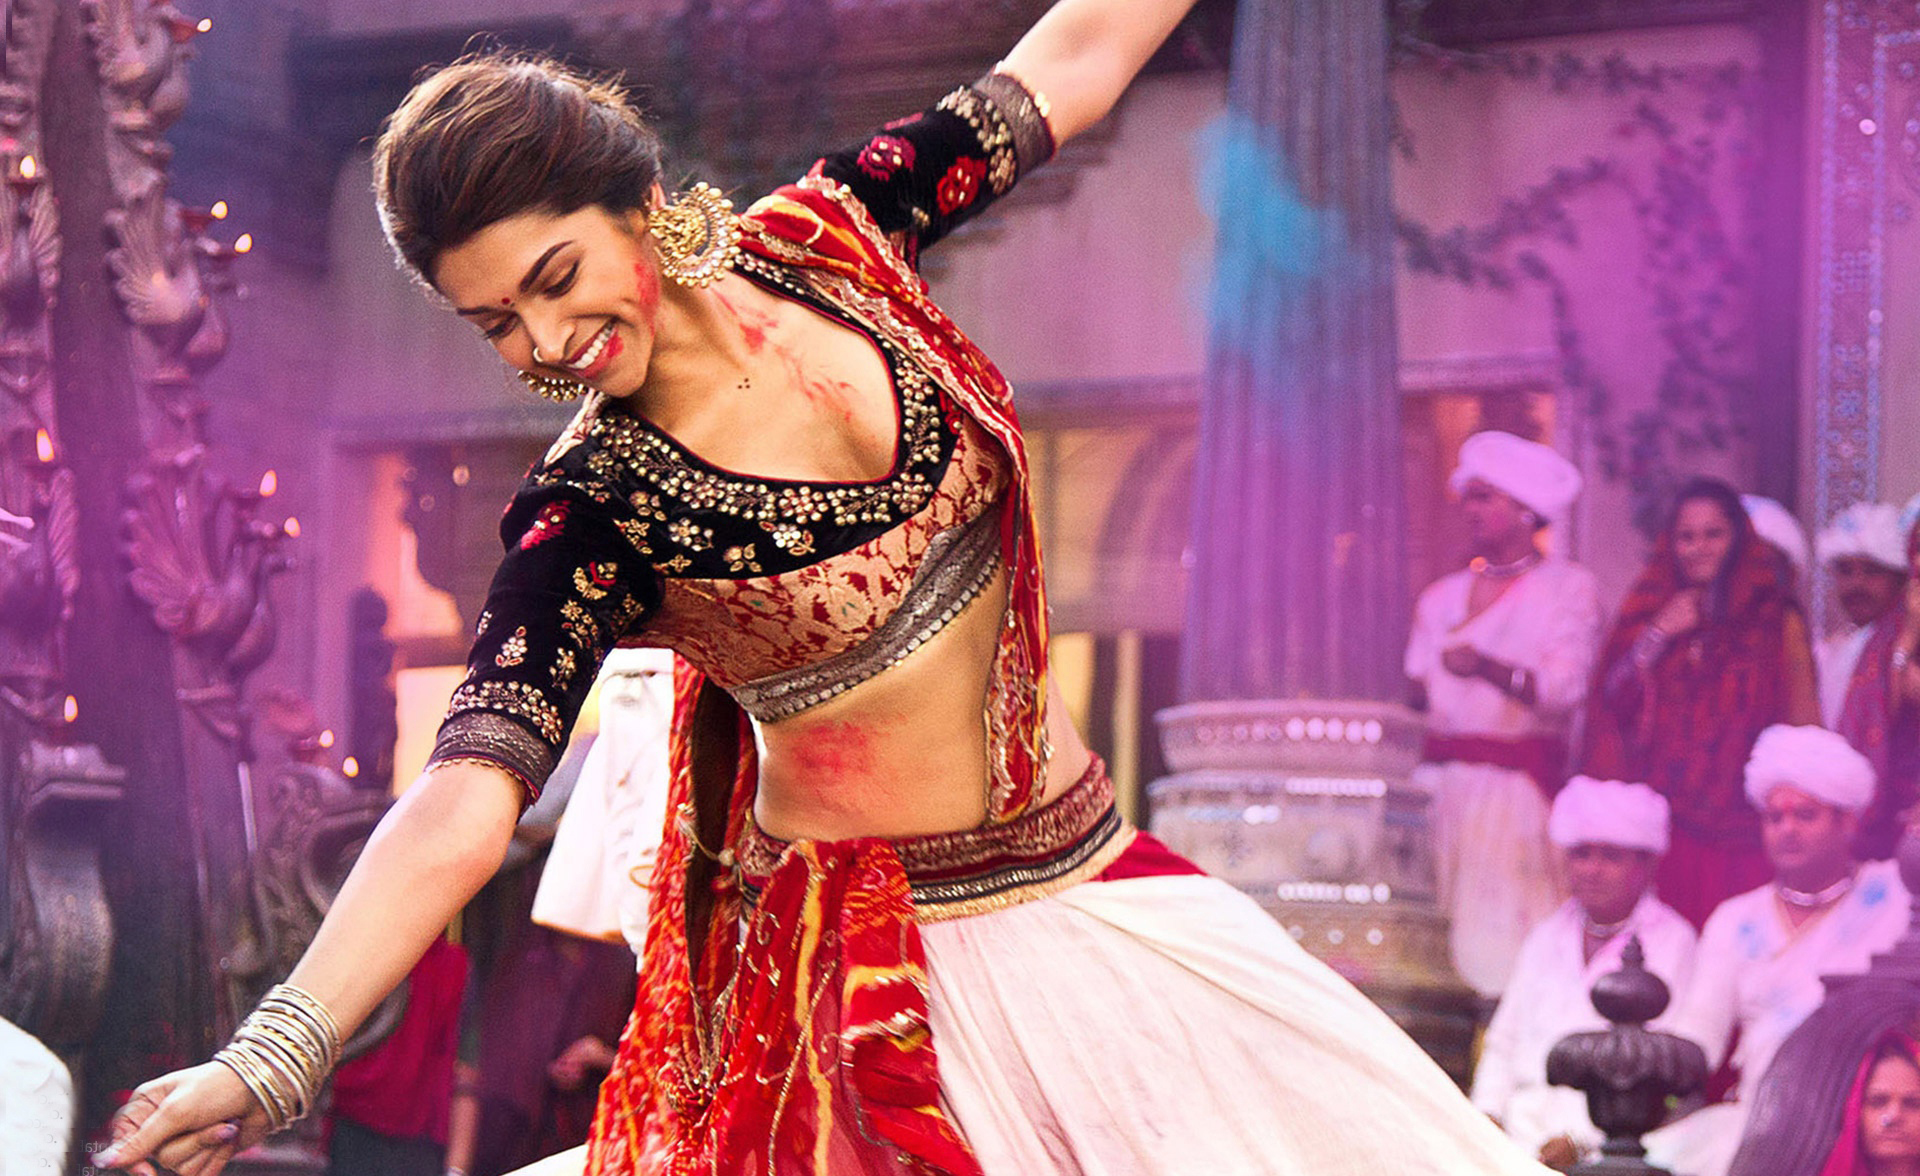 Ram-leela-Hd-wallpaper_deepika-Ranvir-1